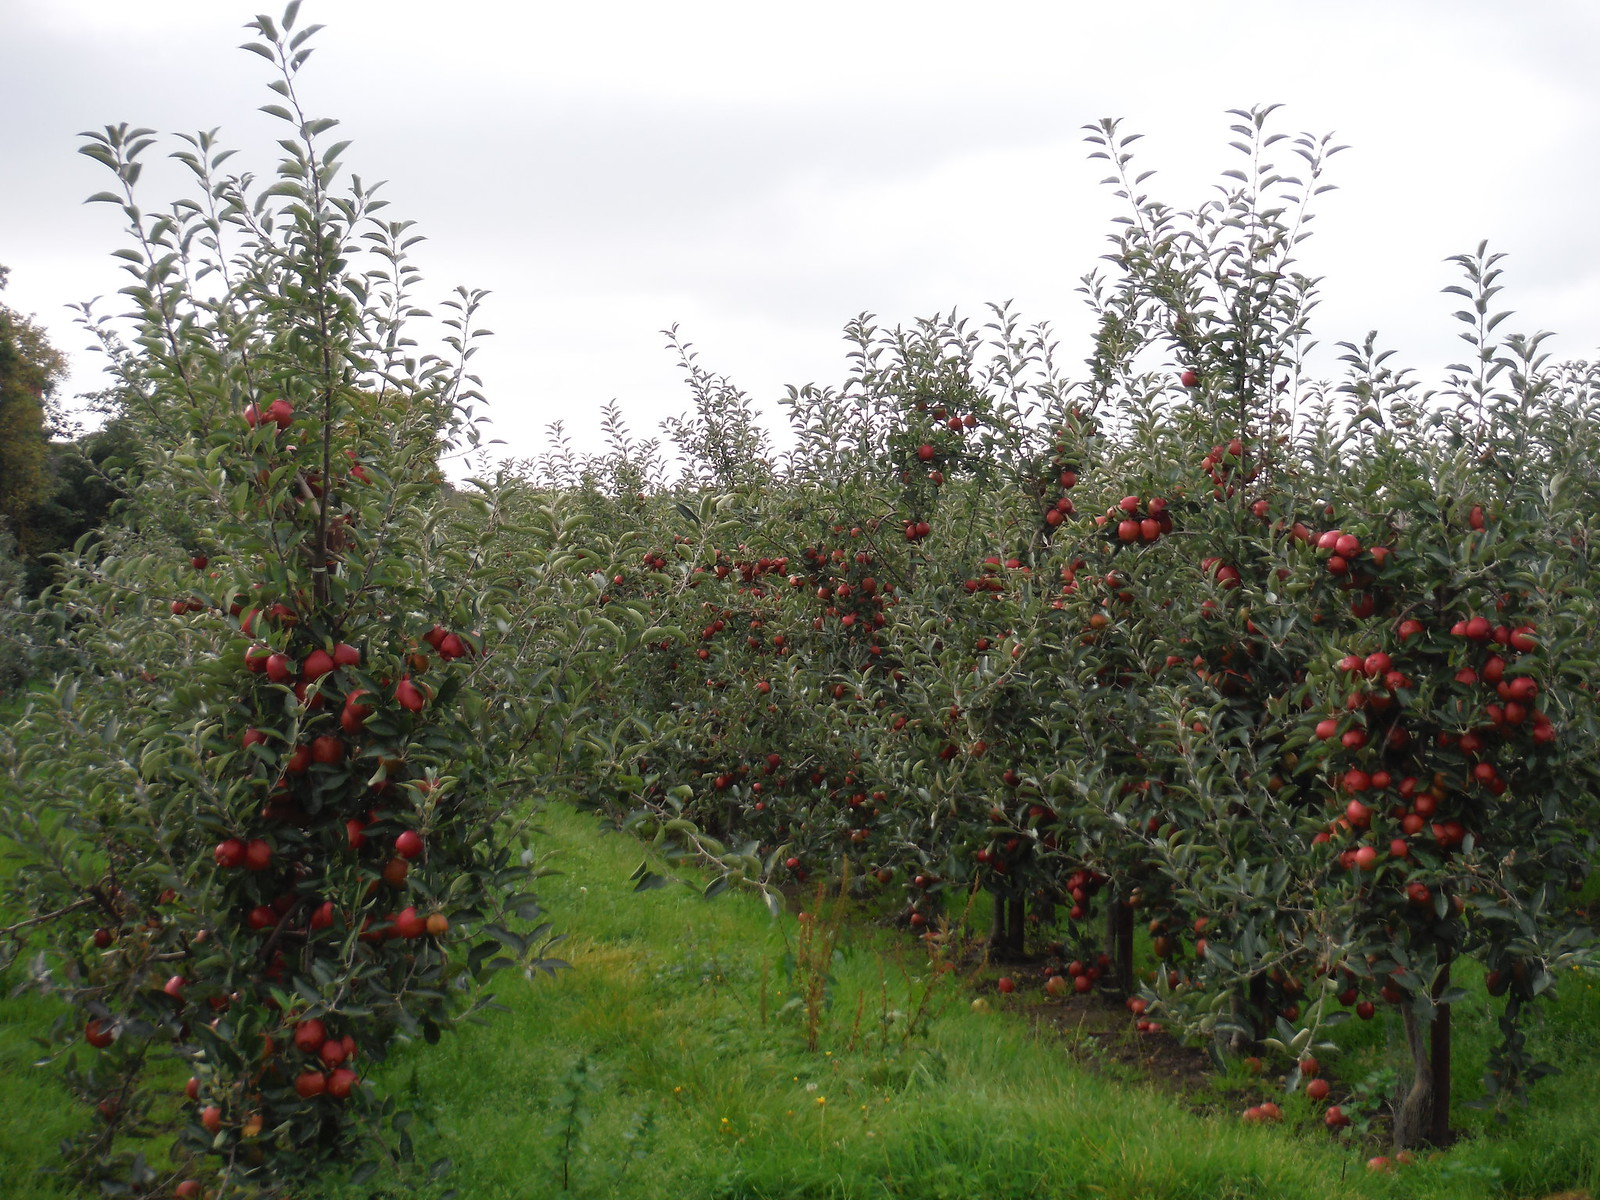 Apple Orchard, Bogle SWC Walk 299 - Teynham to Faversham